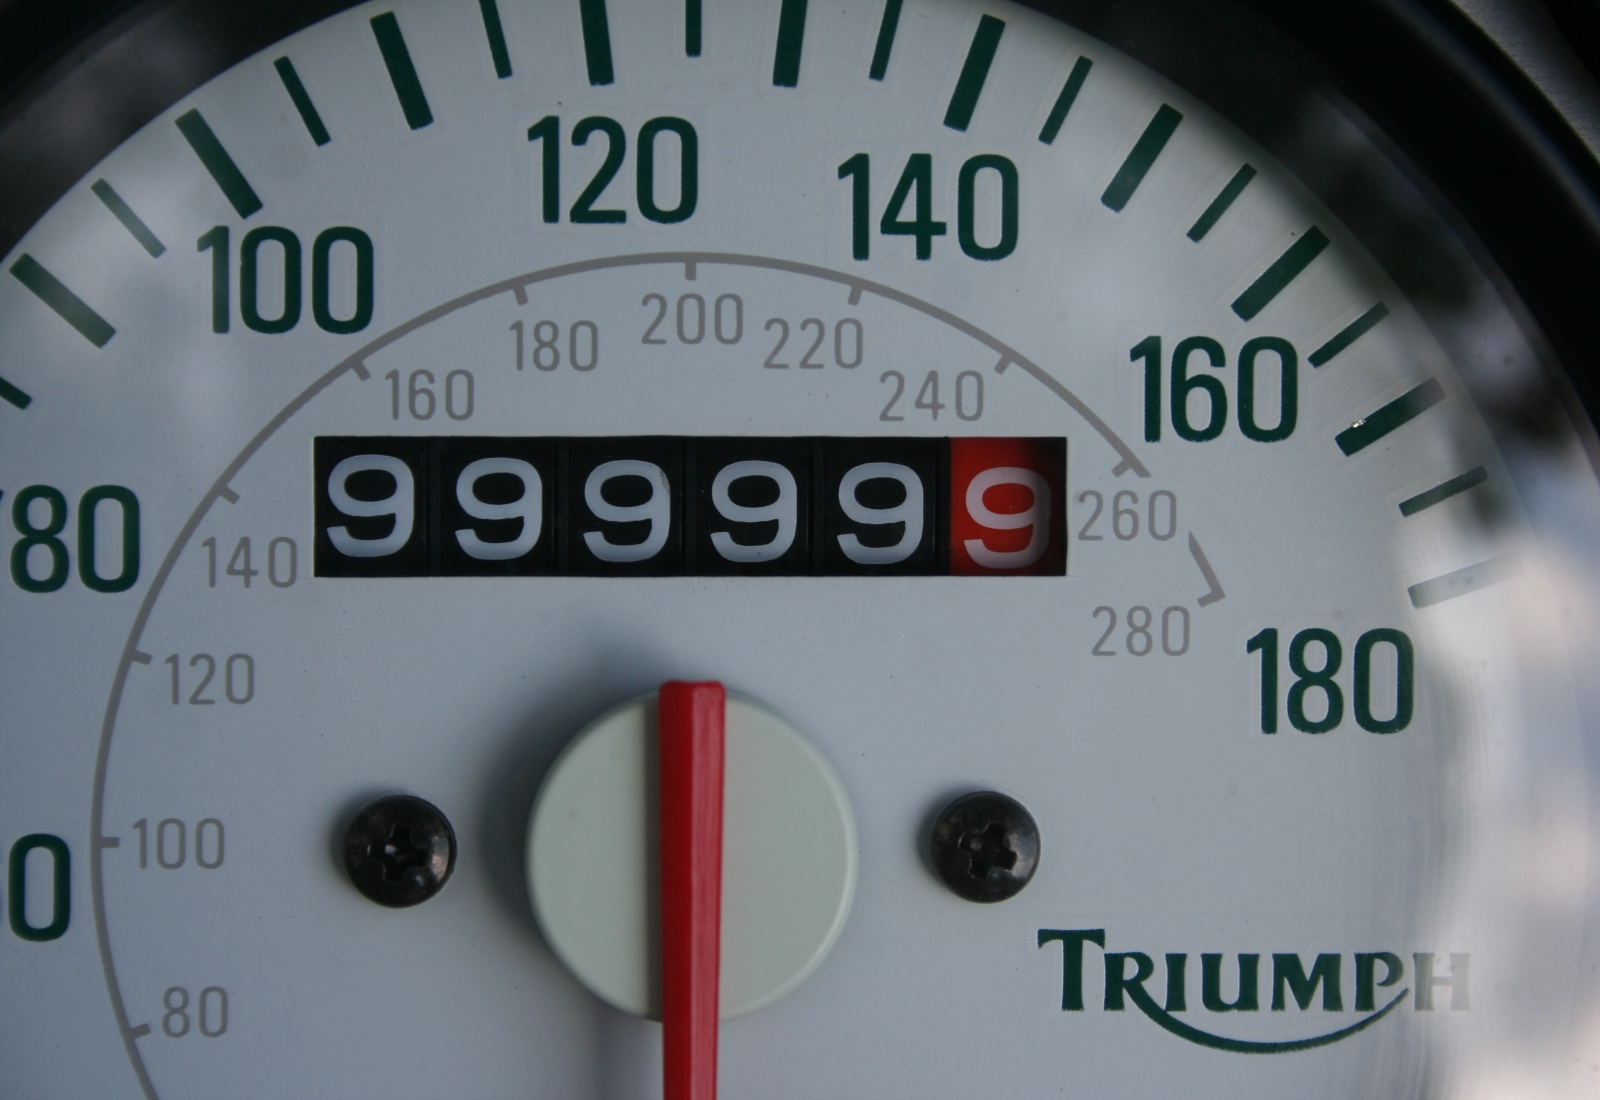 999,999.9 miles on the odometer